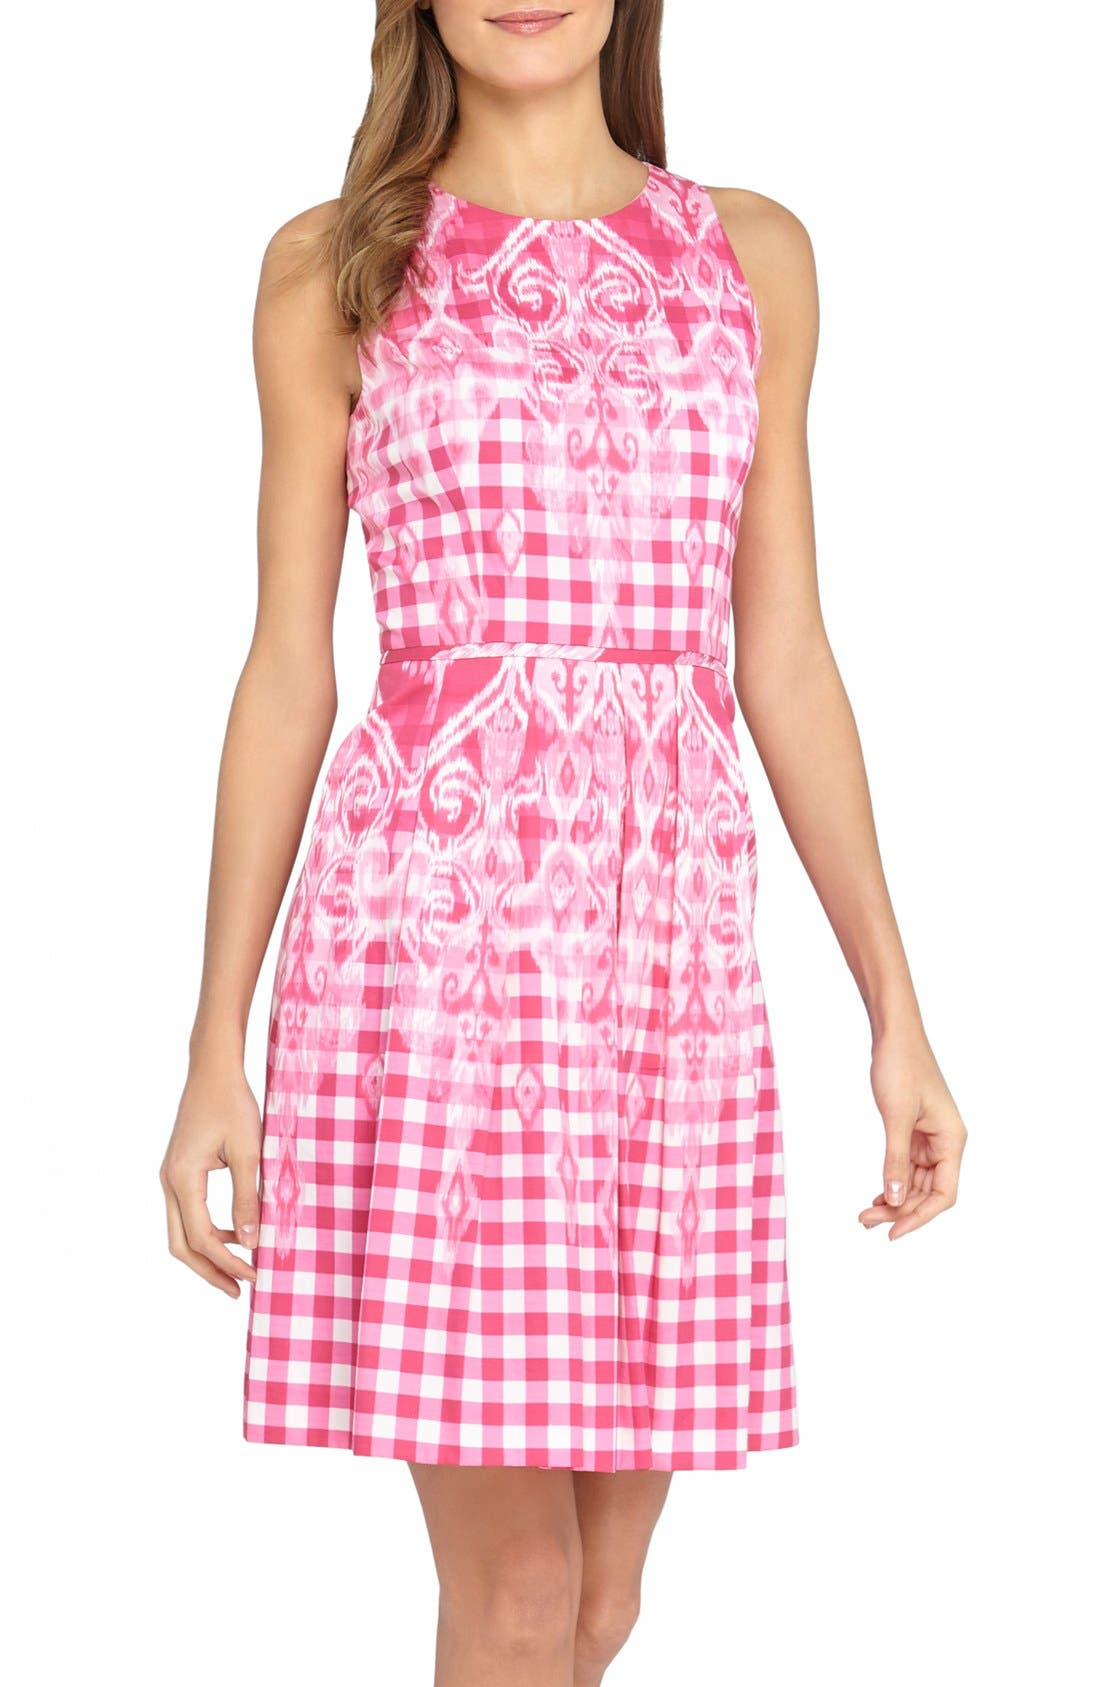 Alternate Image 1 Selected - Tahari Gingham Print Fit & Flare Dress (Regular & Petite)